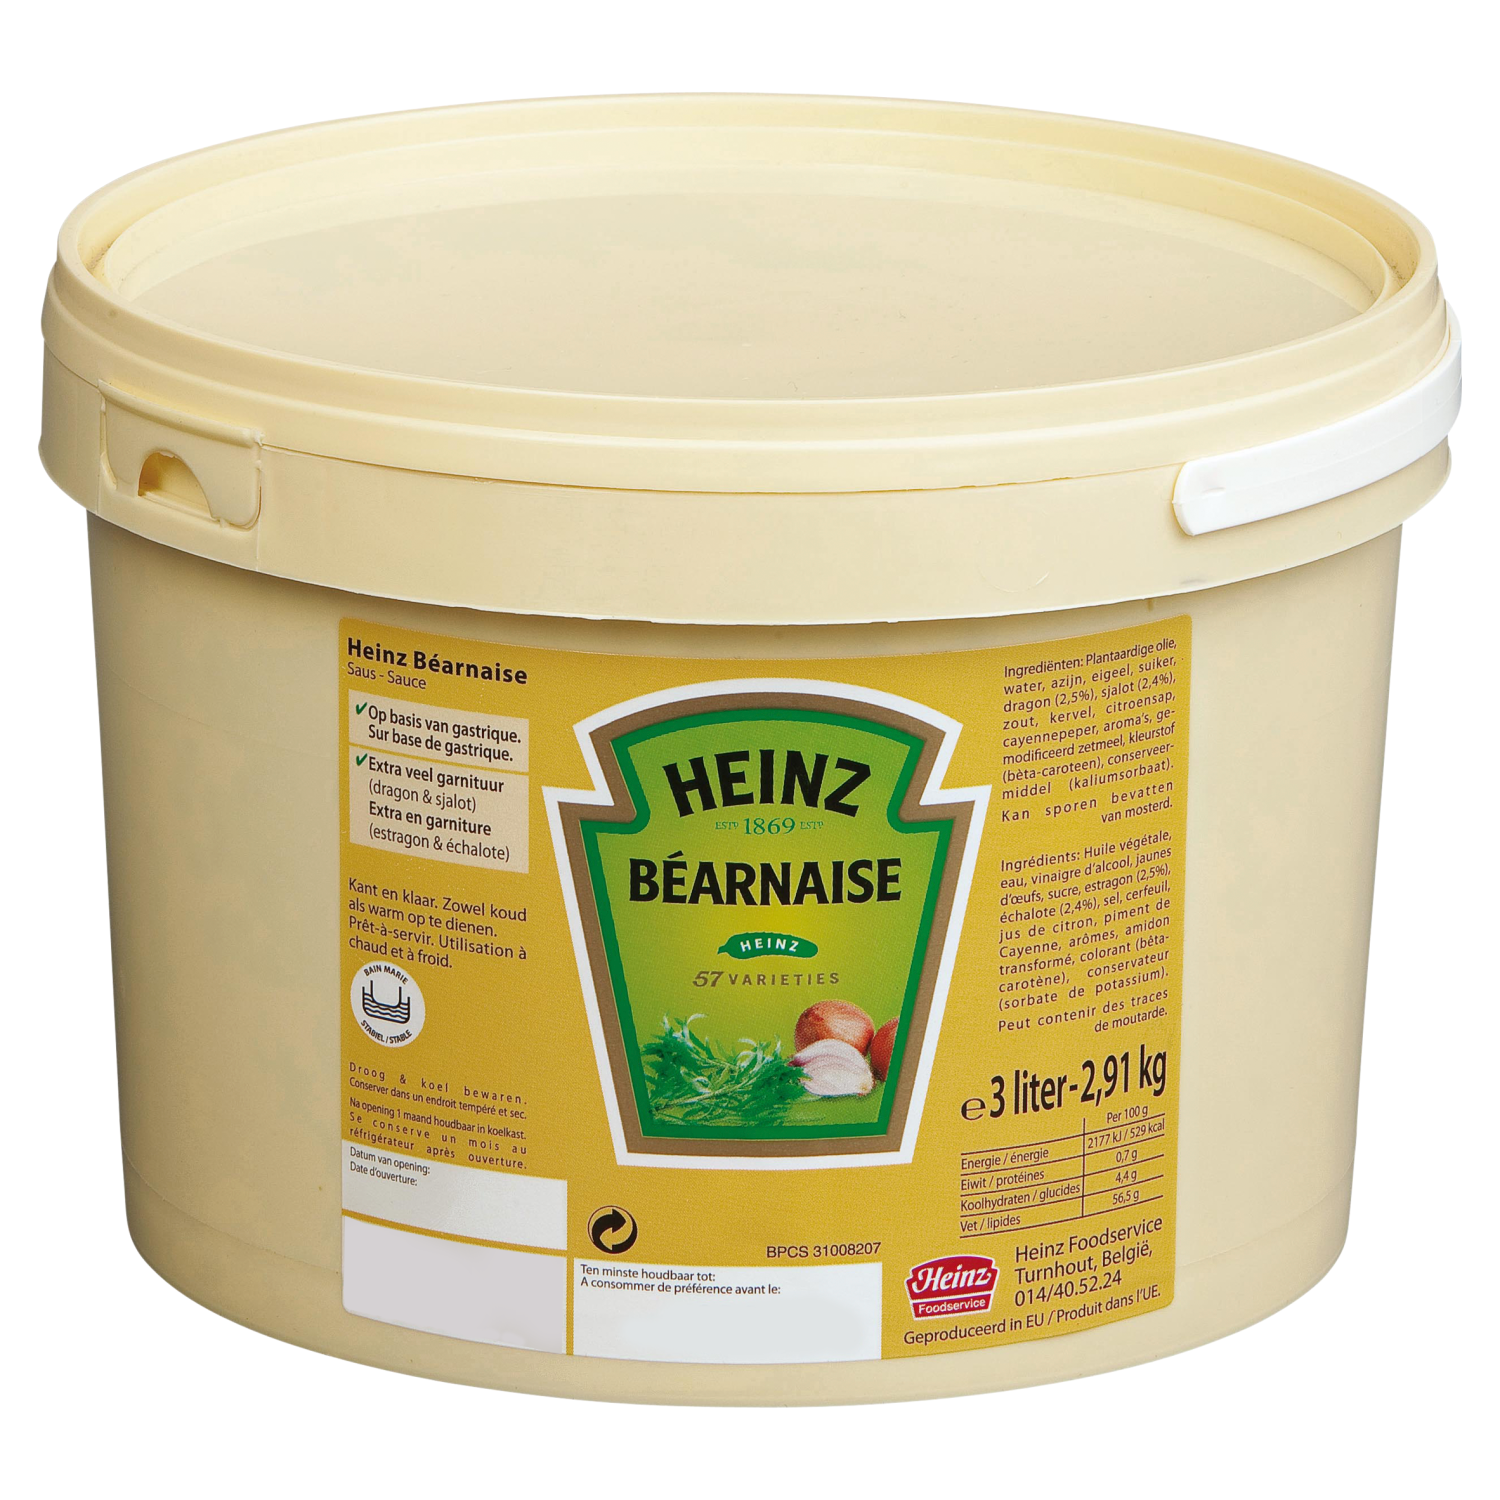 Heinz Béarnaise (Chaud/Froid) 3L image